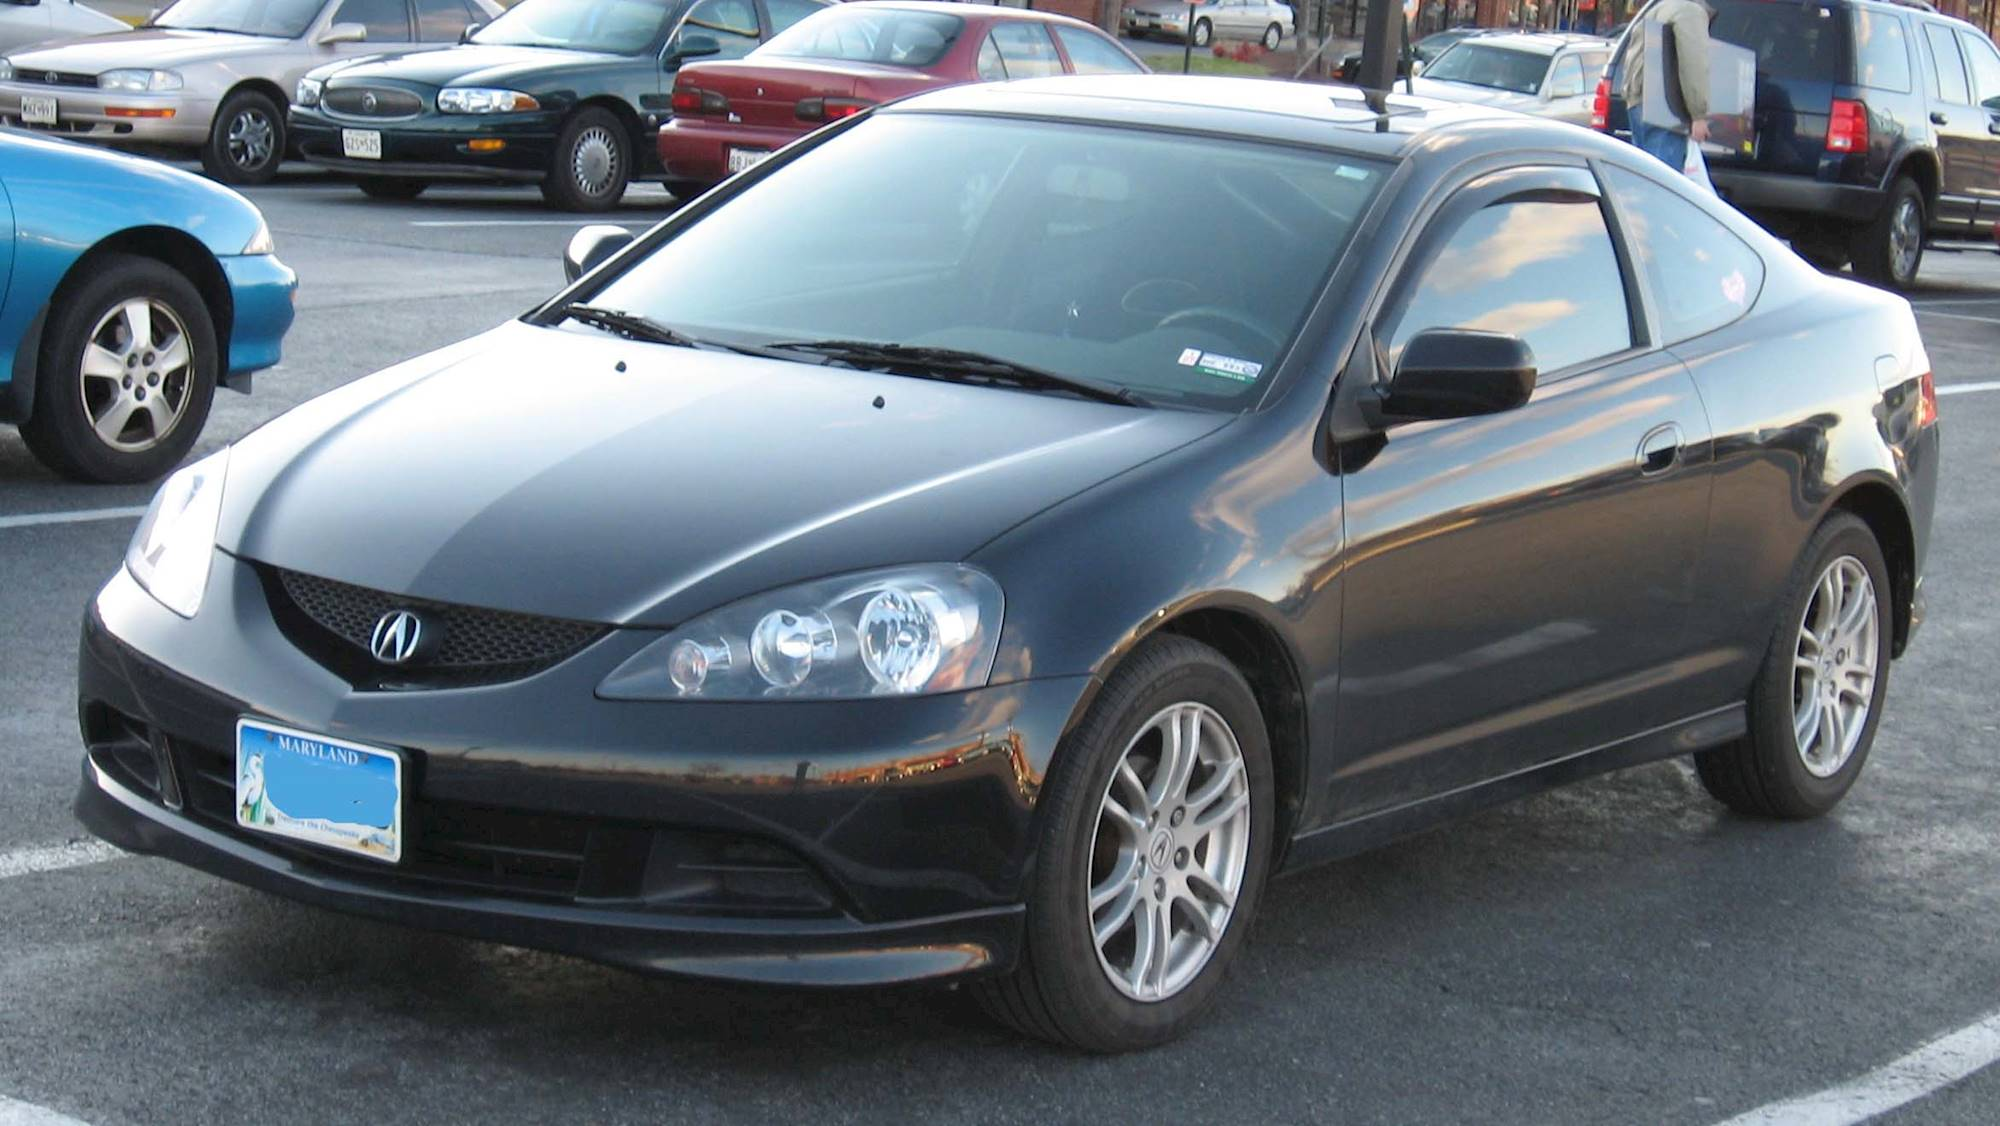 2006 Acura RSX Base - 2dr Hatchback 2.0L auto w/Leather